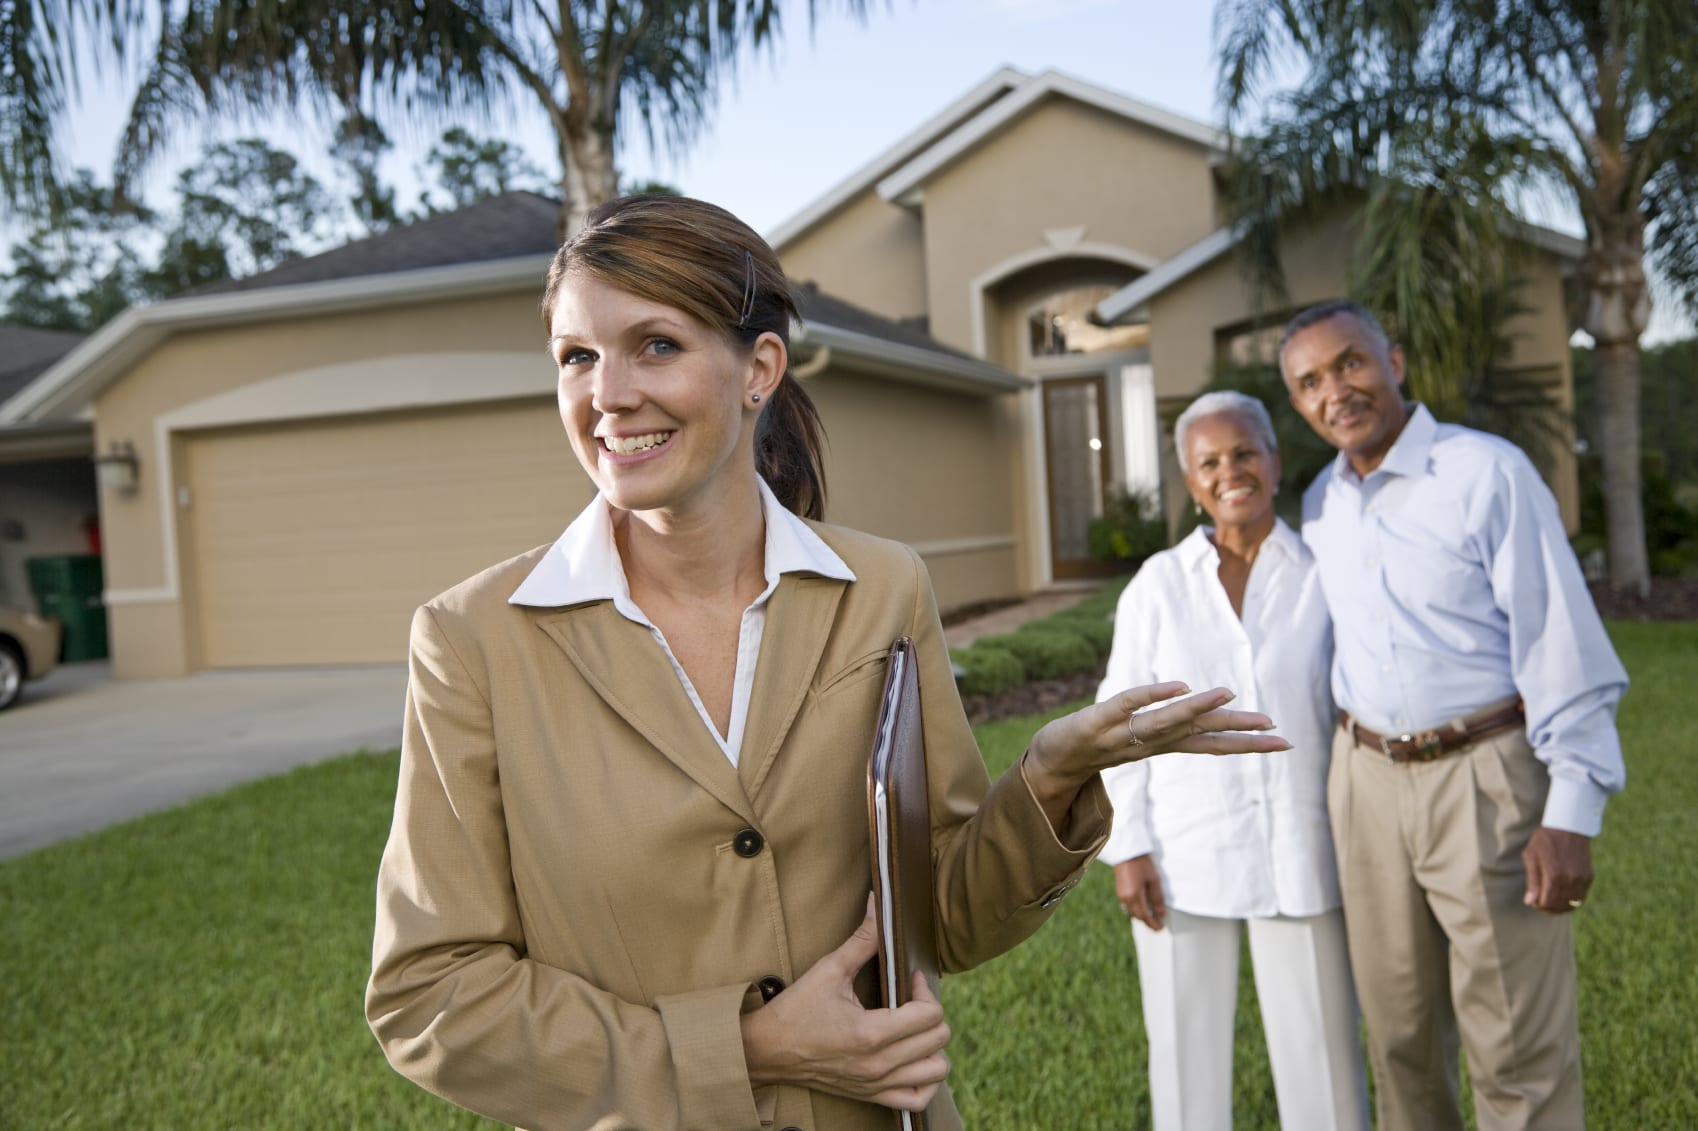 Rental properties are a great source of retirement income